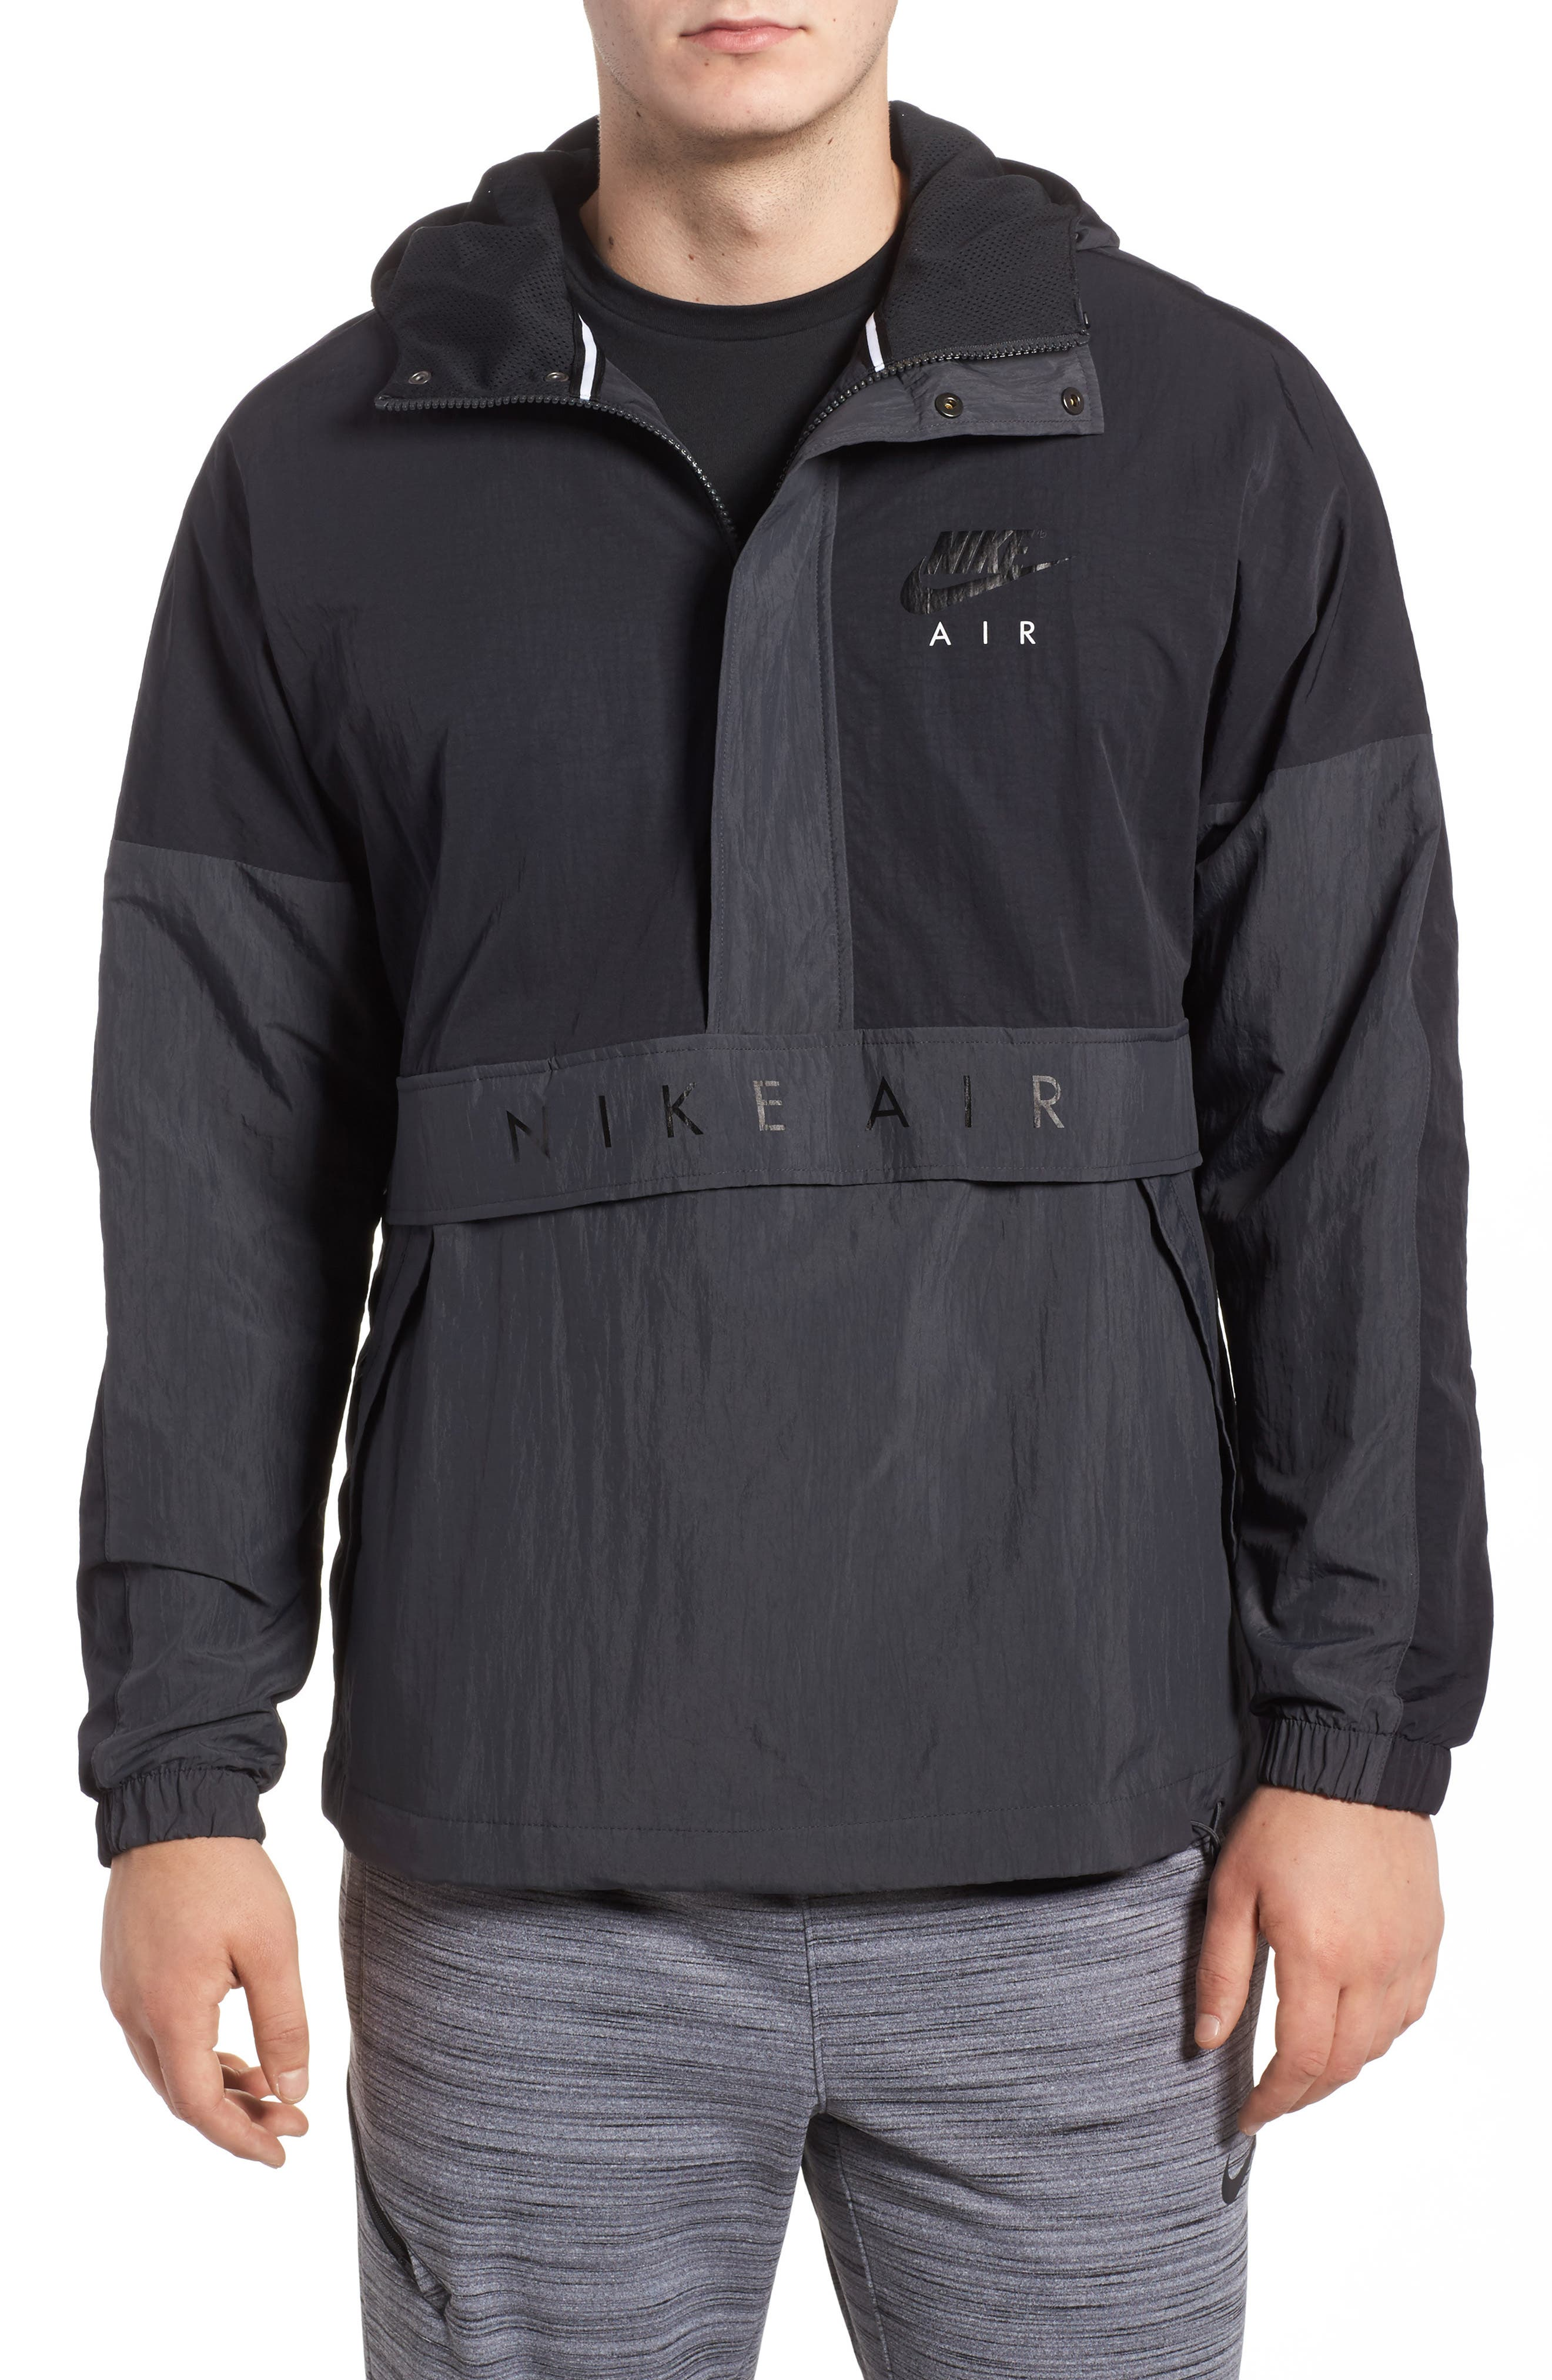 Nike Sportswear Air Hooded Jacket